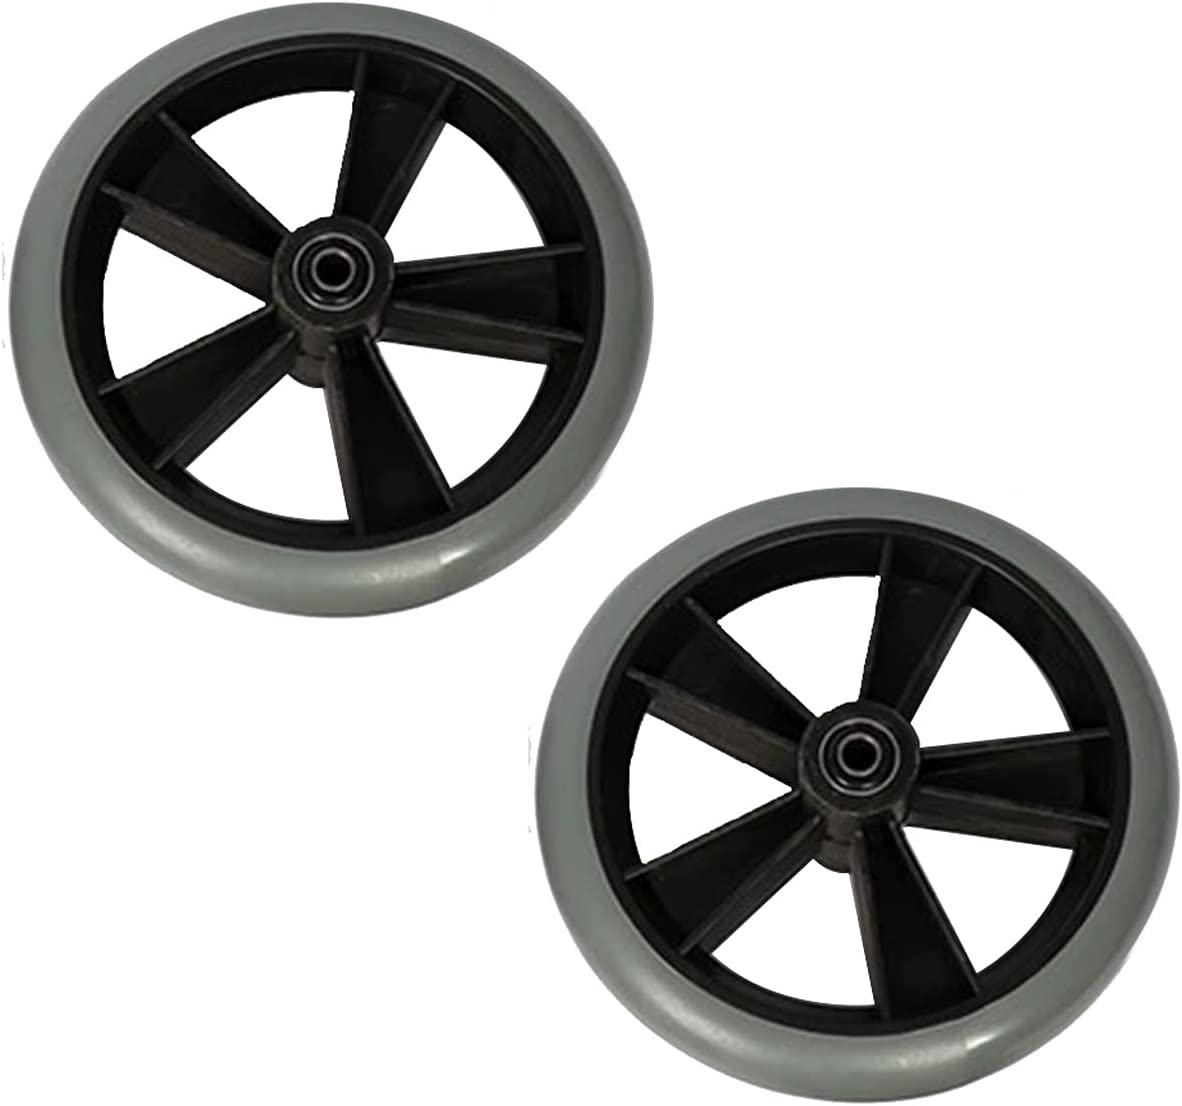 ZLL Great interest Baltimore Mall 7-inch Wheelchair Accessories Front Tires PVC Casters Solid